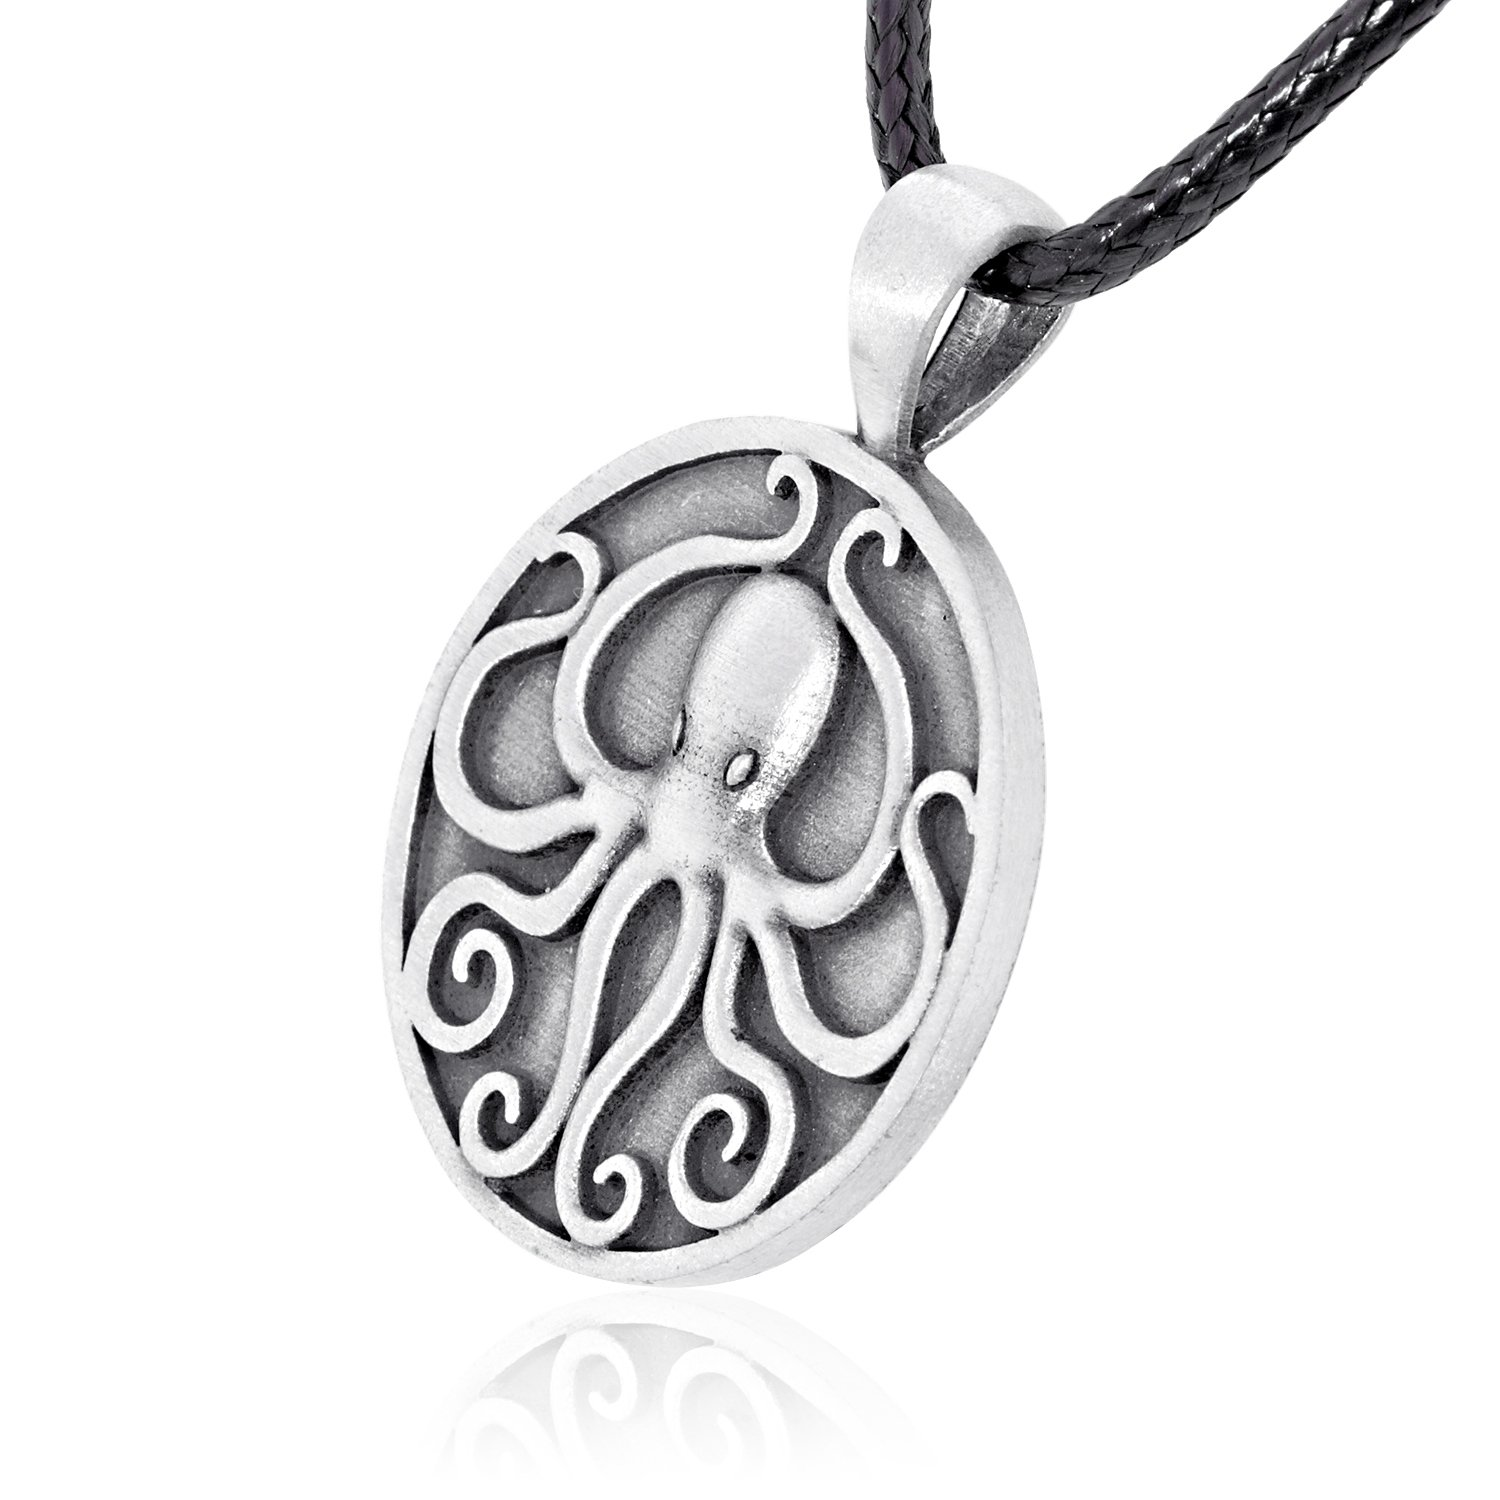 Dan's Jewelers Cthulhu Octopus Pendant Necklace, Fine Pewter Jewelry by Dan's Jewelers (Image #2)